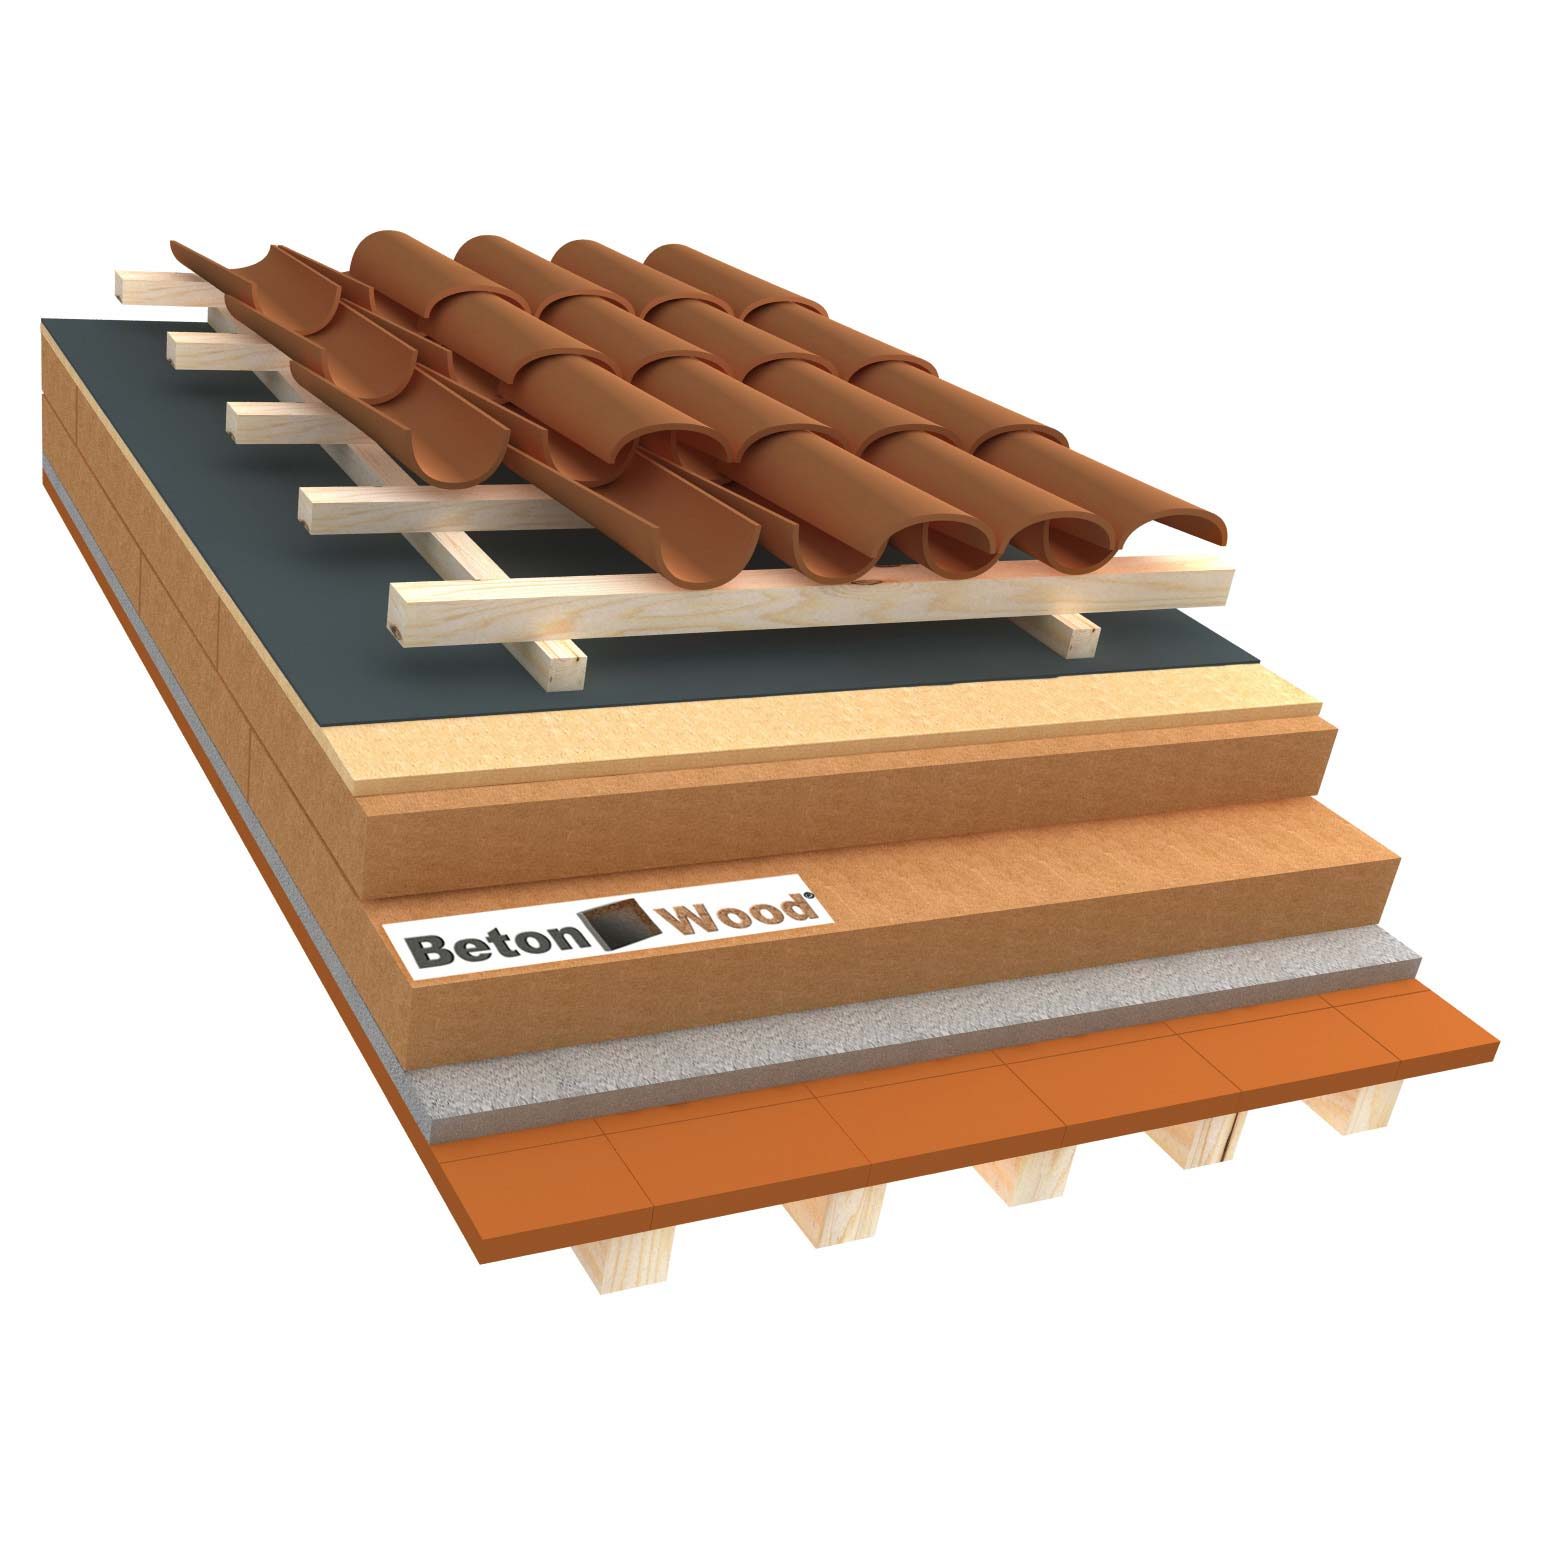 Ventilated roof with wood fibre board Isorel and Special on terracotta tiles